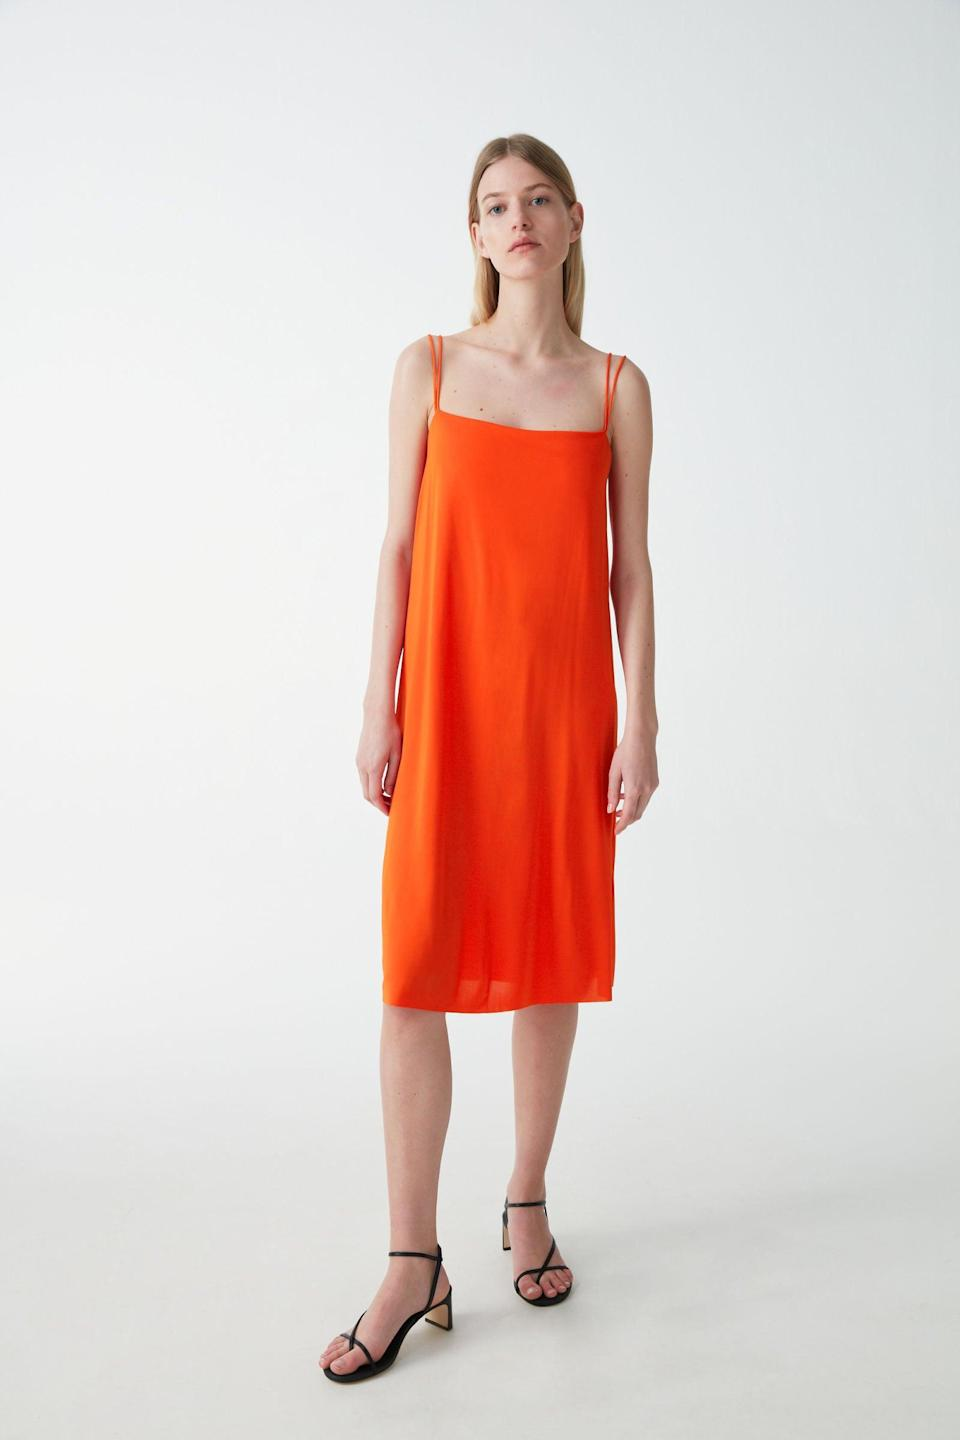 """<h2>COS Sale</h2> <br>As part of the still-simmering sale at COS, you can snag this 70%-off slip dress in a classic A-line style that was originally <a href=""""http://refinery29.com/en-us/cos-summer-sale"""" rel=""""nofollow noopener"""" target=""""_blank"""" data-ylk=""""slk:featured as a reader-favorite buy in our coverage"""" class=""""link rapid-noclick-resp"""">featured as a reader-favorite buy in our coverage</a> of the sweet summer shopping event. <br><br><em>Shop <strong><a href=""""https://www.cosstores.com/en_usd/women/sale.html"""" rel=""""nofollow noopener"""" target=""""_blank"""" data-ylk=""""slk:COS"""" class=""""link rapid-noclick-resp"""">COS</a></strong></em><br><br><strong>COS</strong> A-line Slip Dress, $, available at <a href=""""https://go.skimresources.com/?id=30283X879131&url=https%3A%2F%2Fwww.cosstores.com%2Fen_usd%2Fwomen%2Fwomenswear%2Fdresses%2Fproduct.a-line-slip-dress-orange.0902234002.html"""" rel=""""nofollow noopener"""" target=""""_blank"""" data-ylk=""""slk:COS"""" class=""""link rapid-noclick-resp"""">COS</a><br><br><br>"""